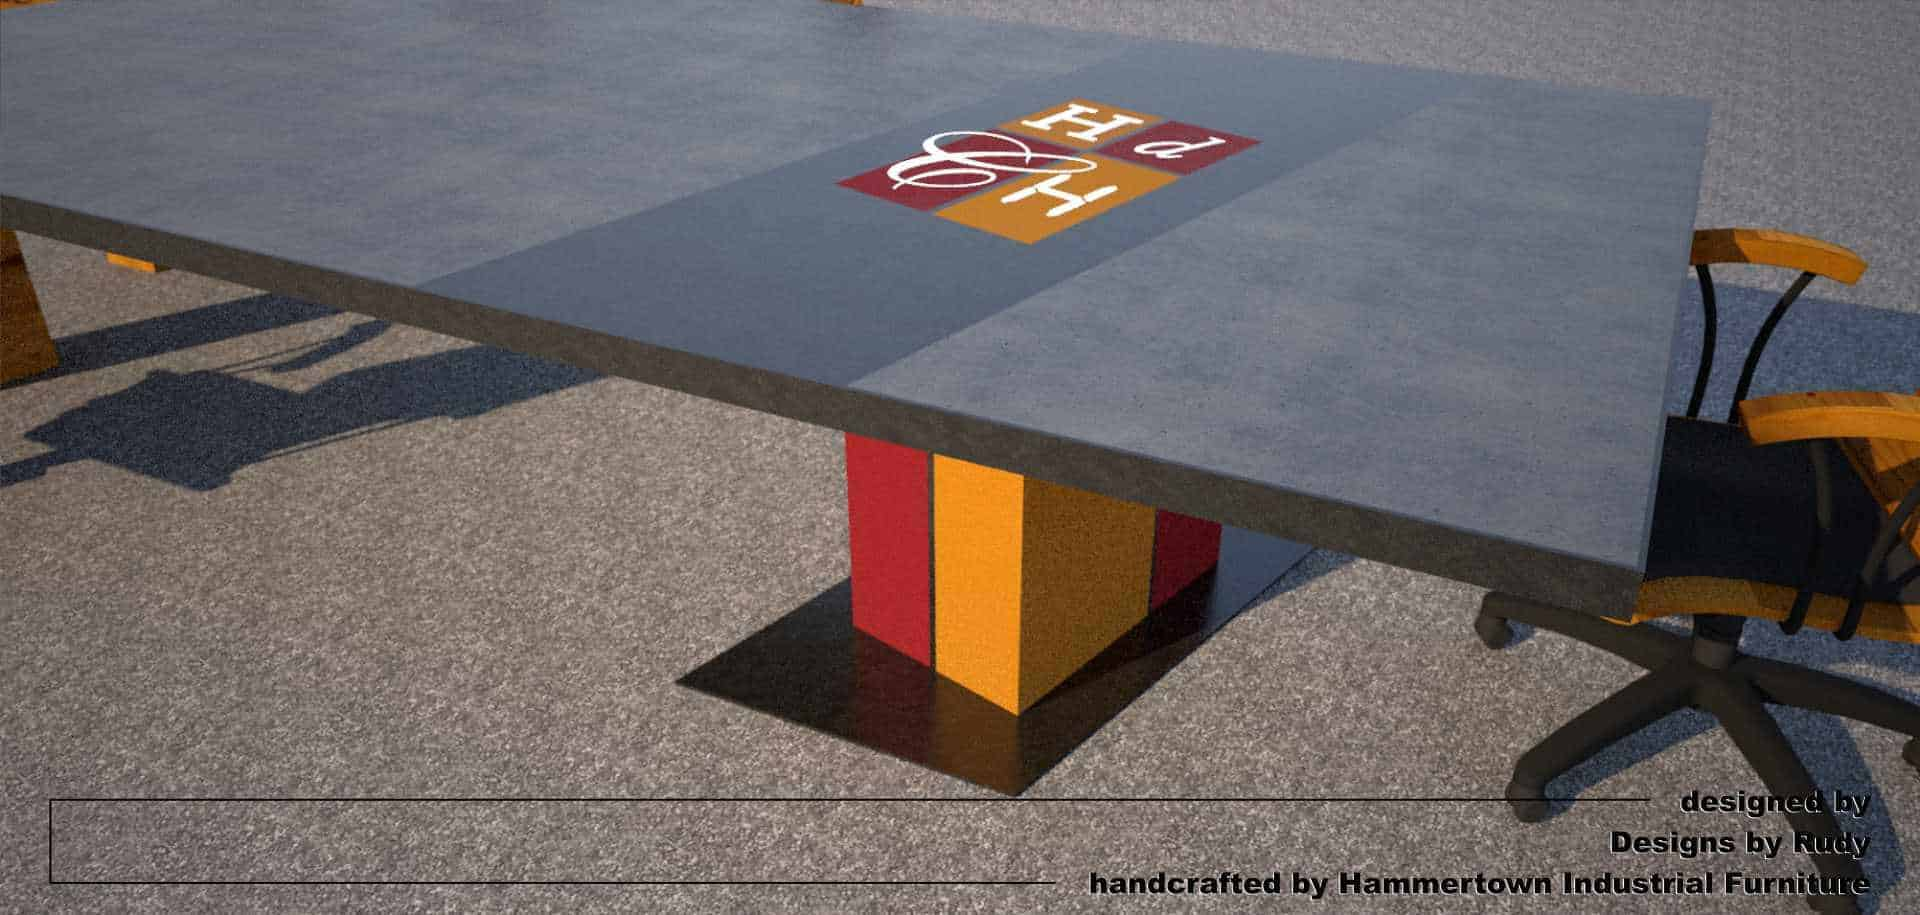 Concrete Conference table for HDCH, designed by Designs by Rudy, logo end leg view